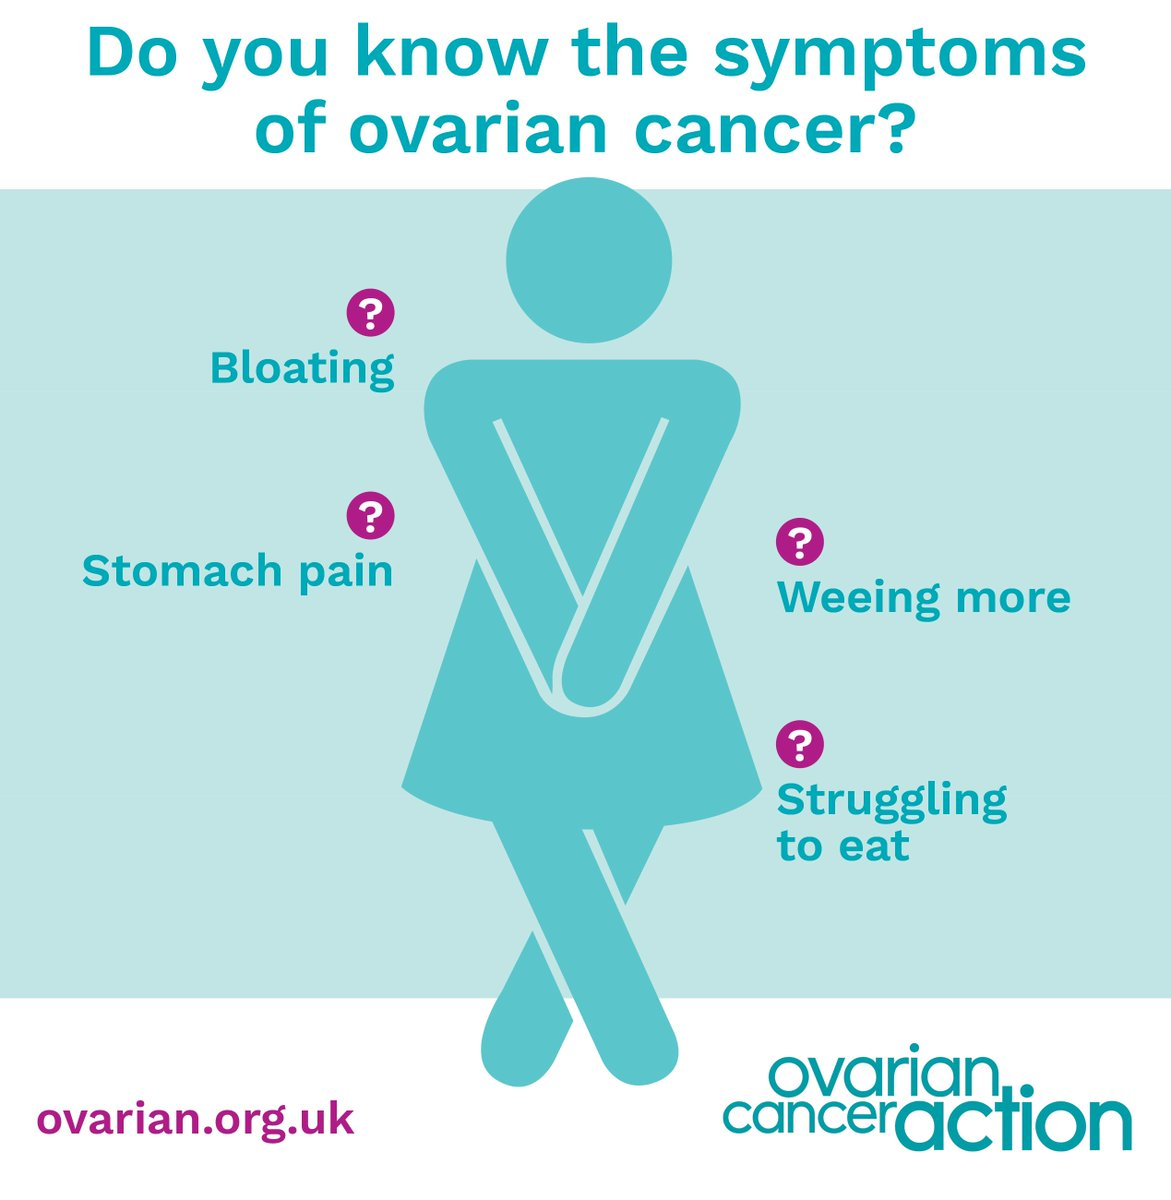 Ovarian Cancer Action Sur Twitter Women Diagnosed With Stage 1 Ovarian Cancer Have A 90 Survival Rate Compared To 19 At Stage 3 Be Symptom Aware Https T Co Lj2aalunpg Ovariancancer Https T Co Dsy4qmdeyk